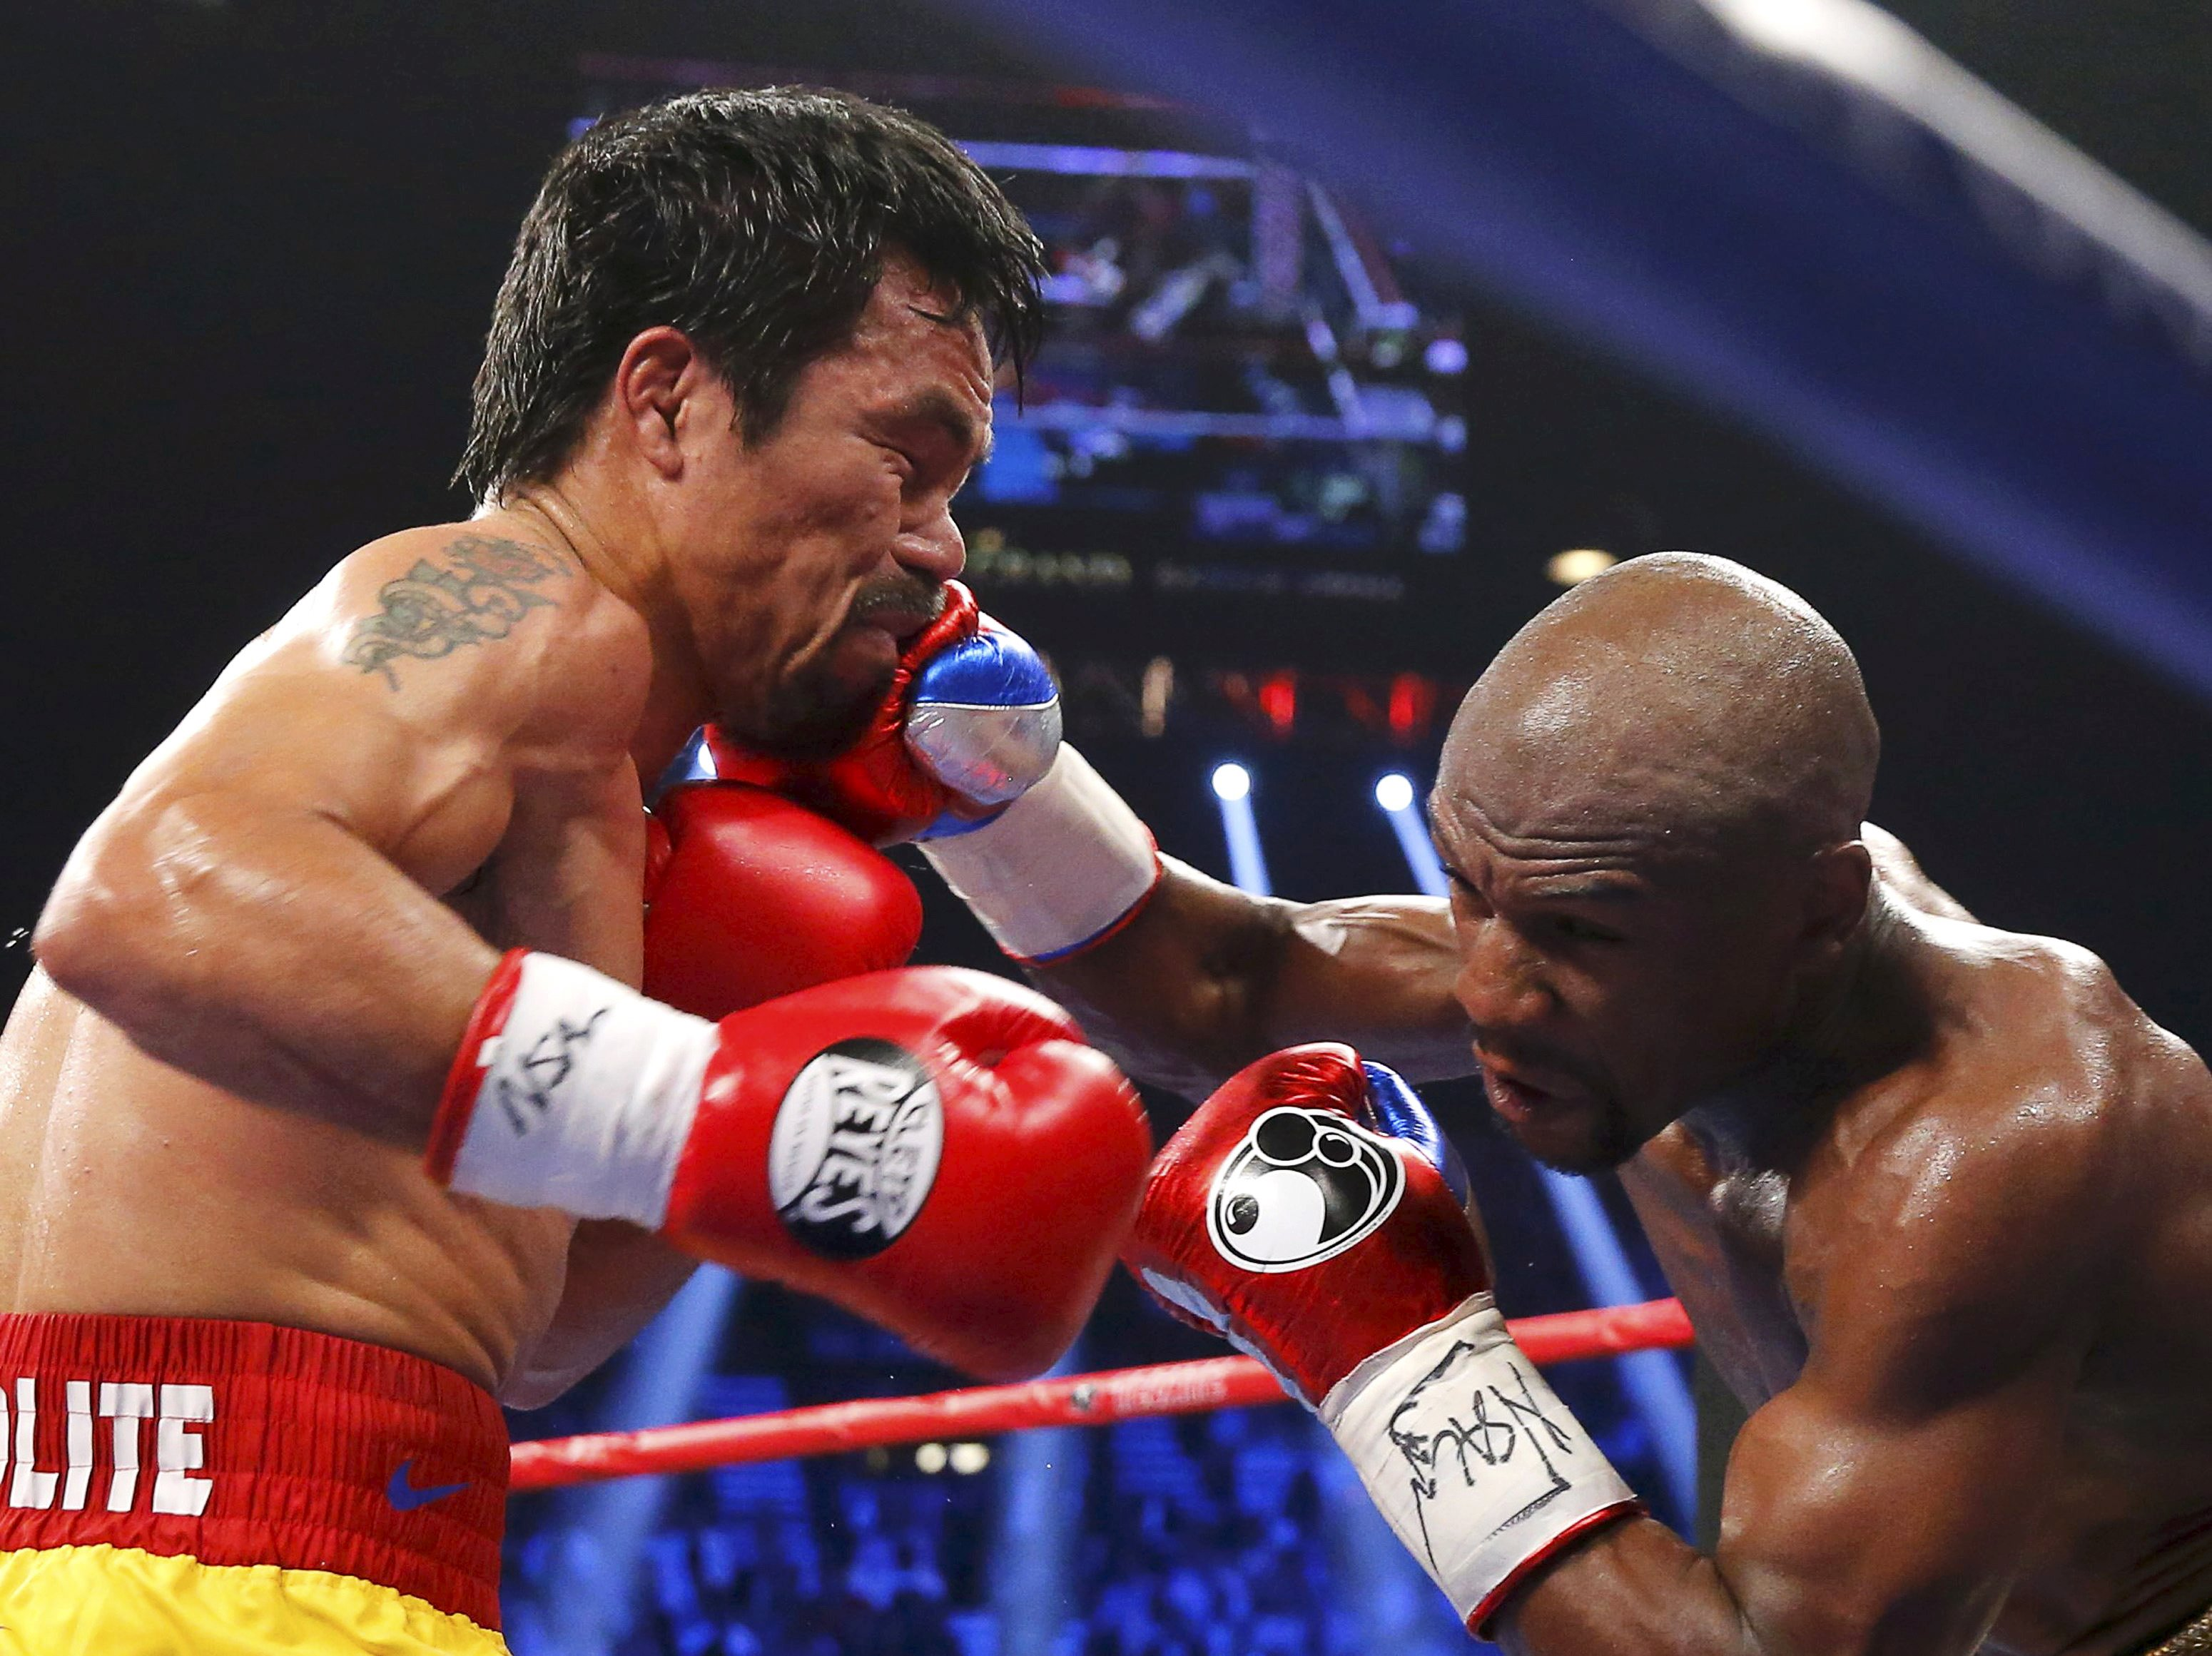 Floyd vs manny dates